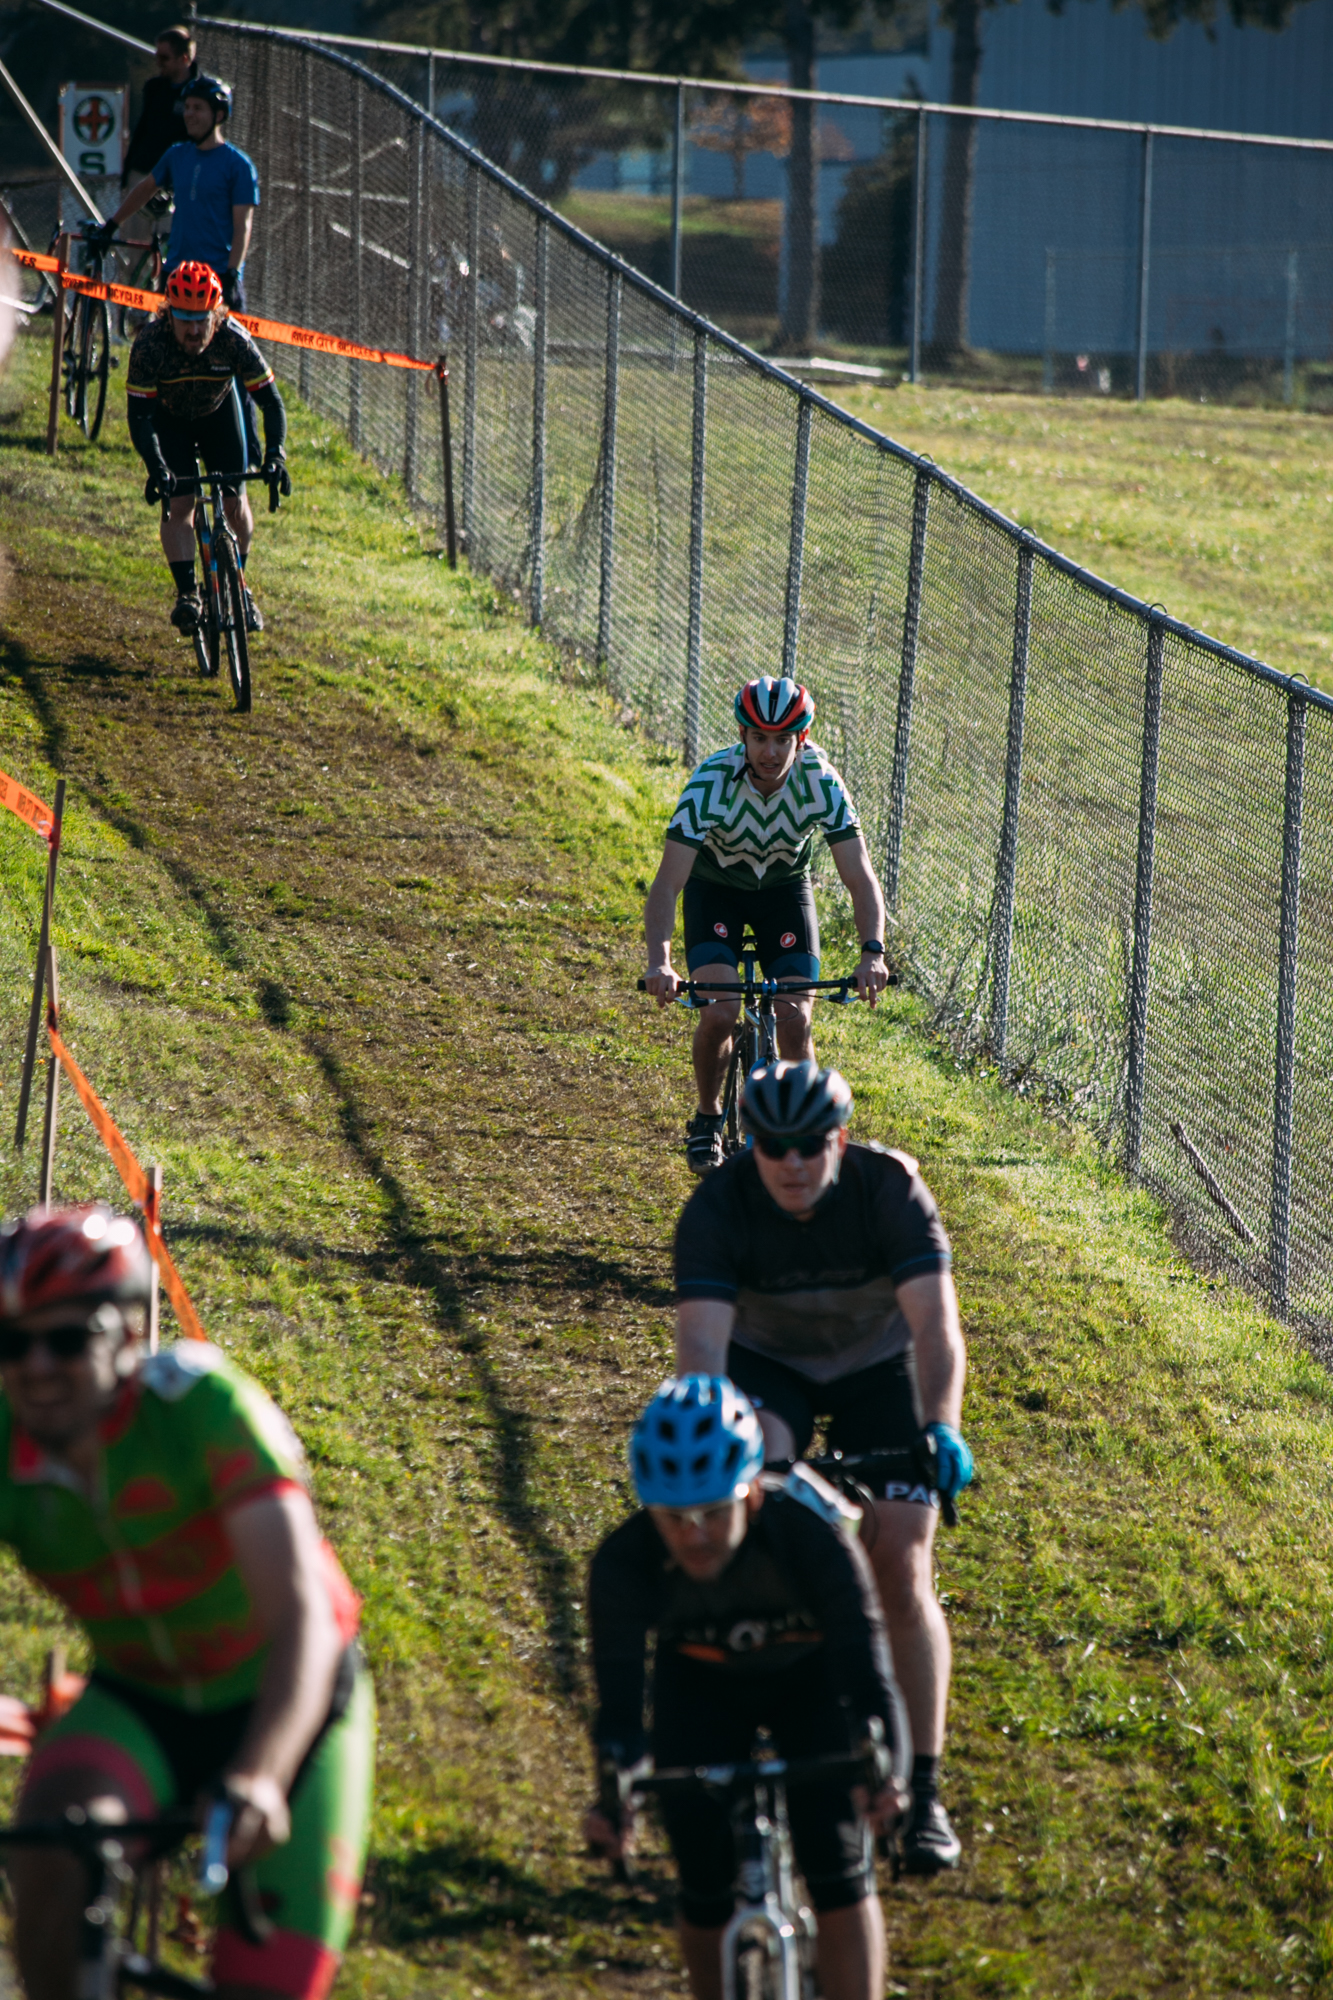 Cyclocross18_CCCX_RainierHS-9-mettlecycling.jpg